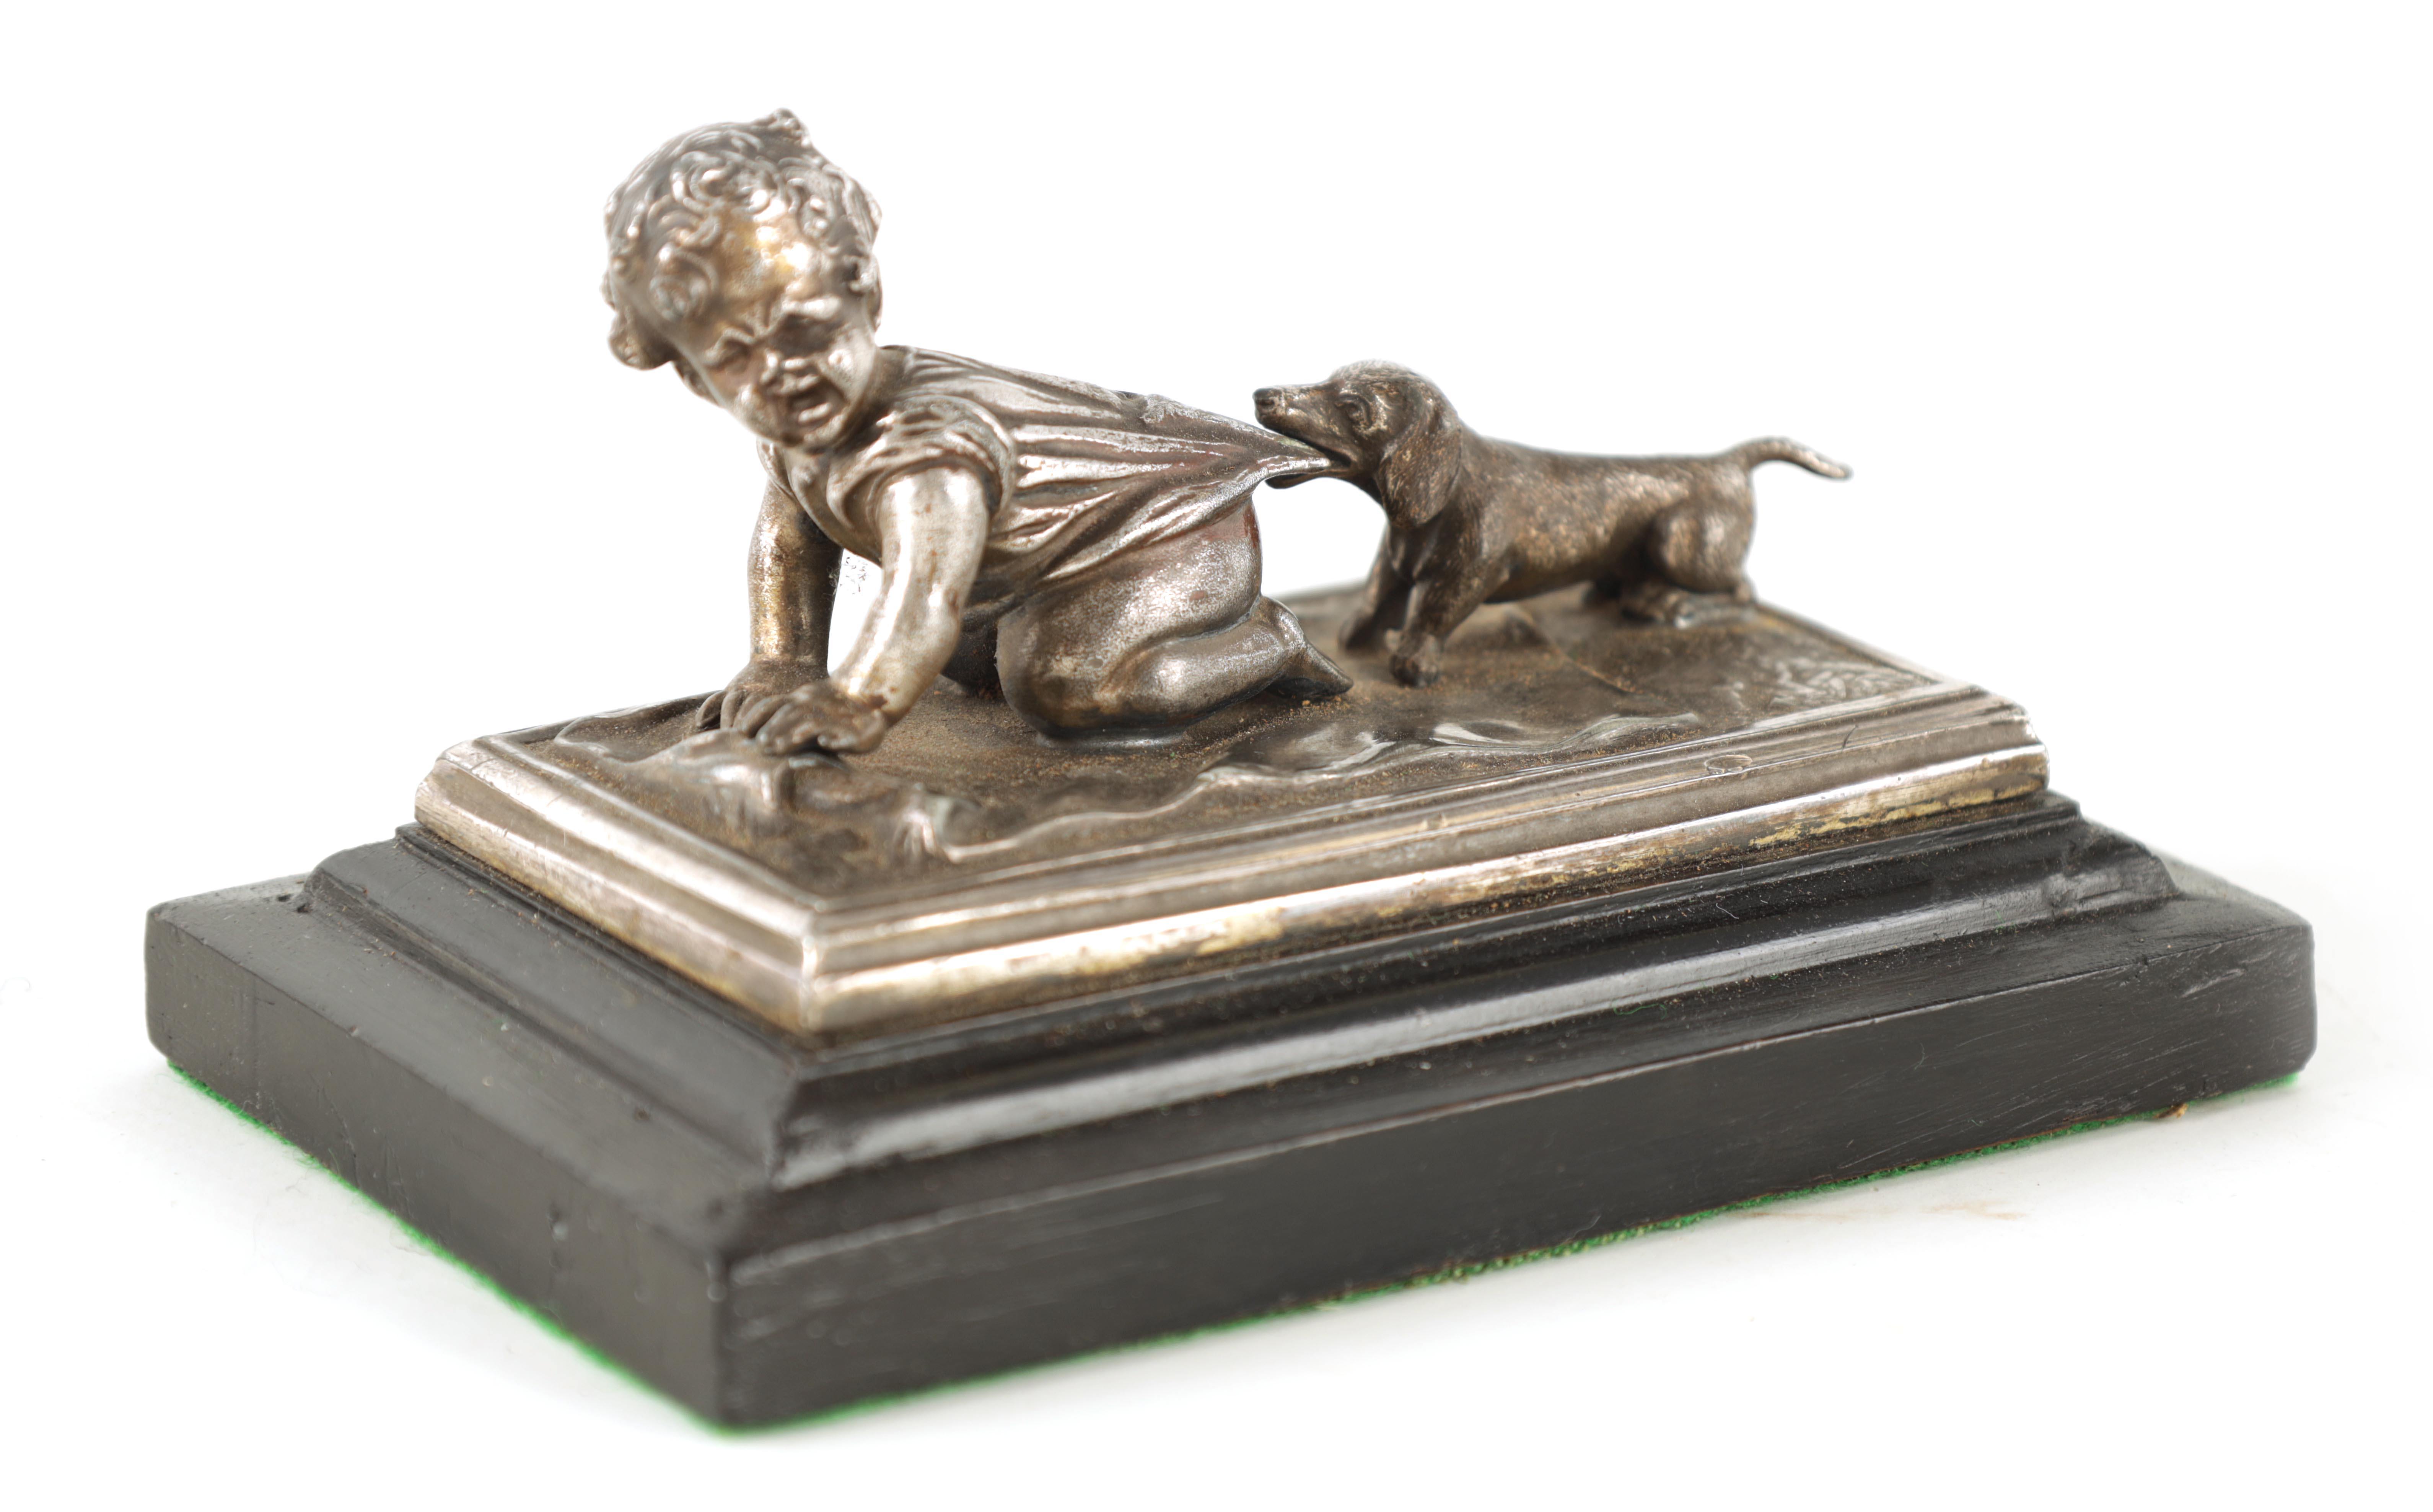 AN UNUSUAL 19TH CENTURY W.M.F. SILVERED METAL DESK PAPERWEIGHT depicting a small child with a